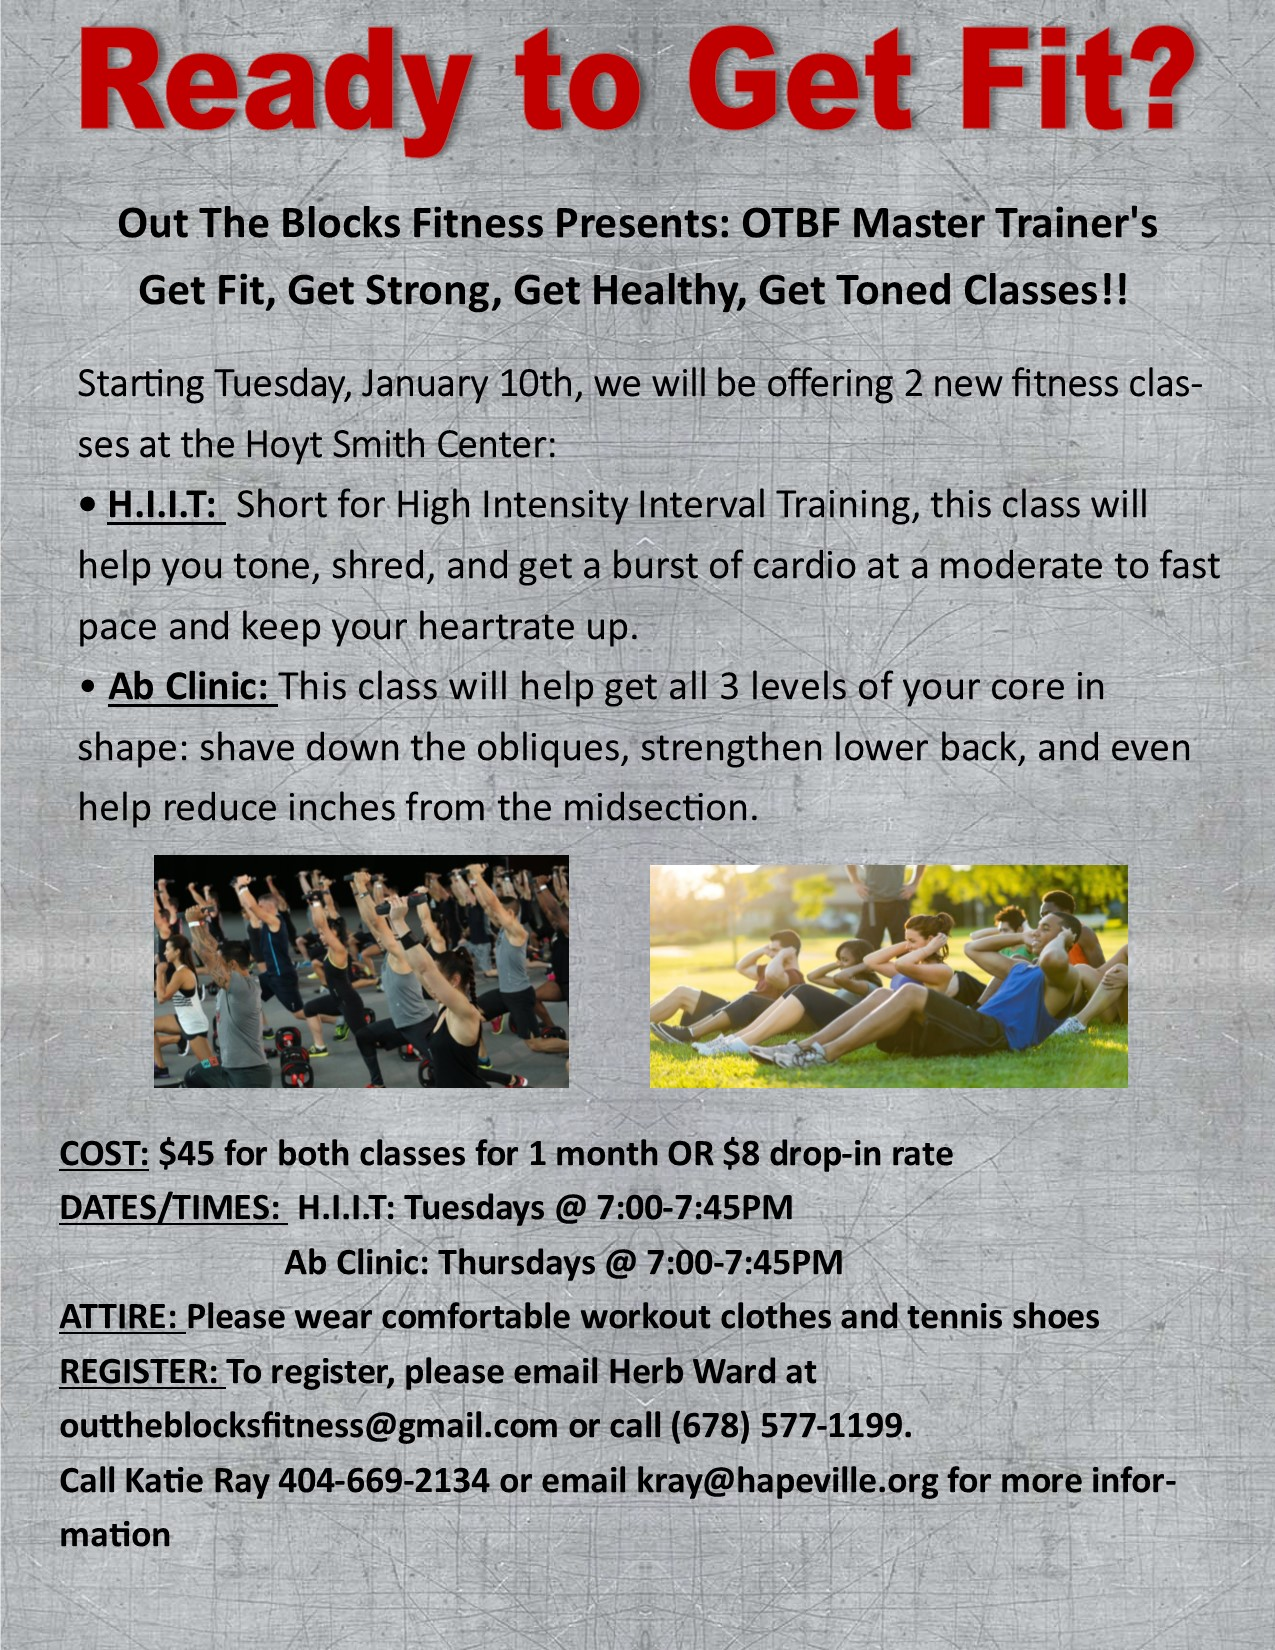 Fitness with Herb Flyer v.4.jpg